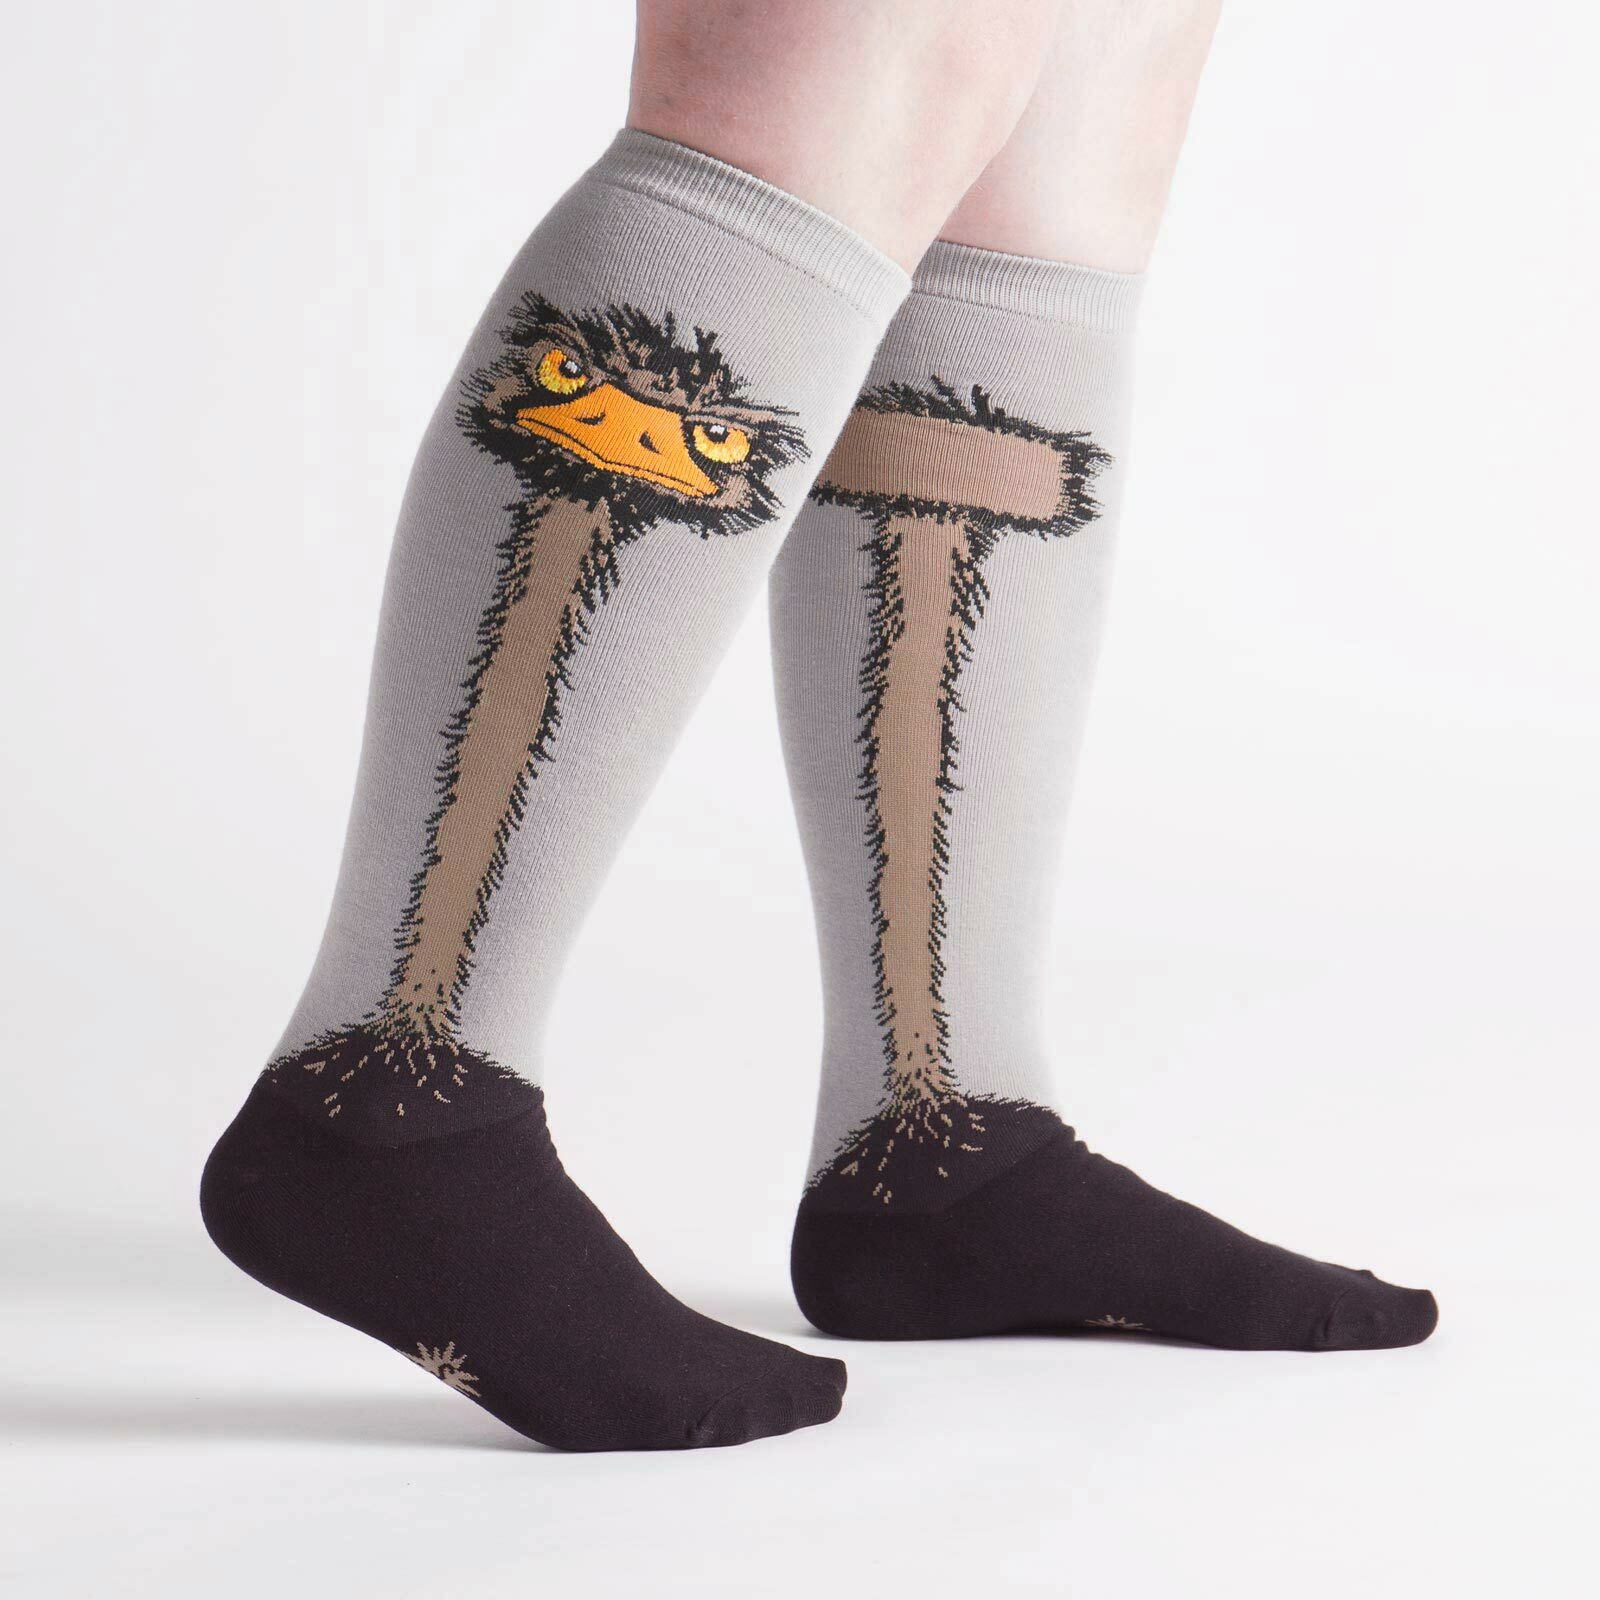 model side view of Ostrich - Wide Calf - Ostrich Knee High Socks Grey - Unisex